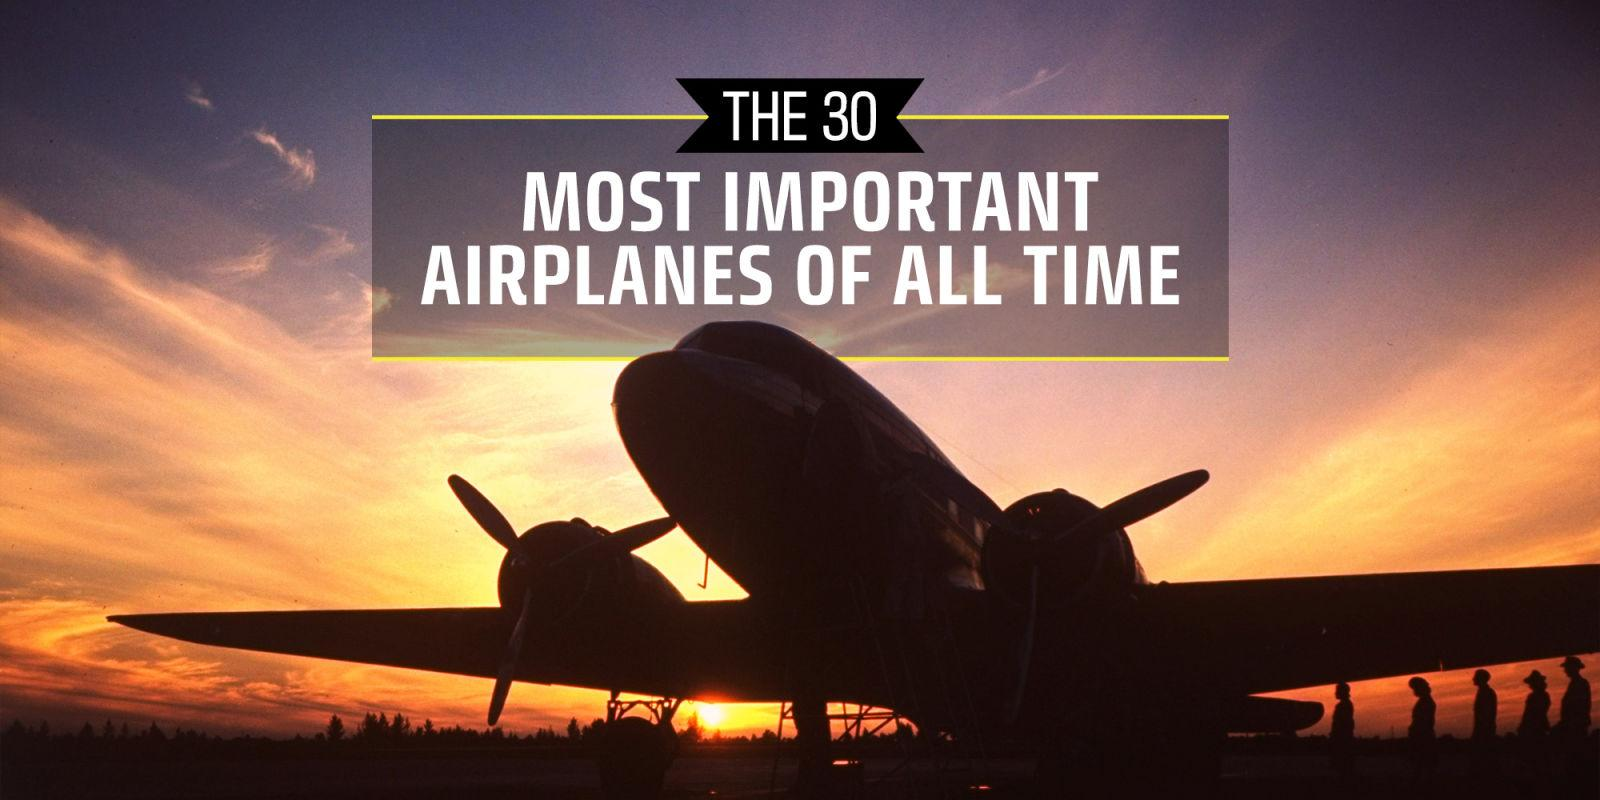 airplane as an important invention